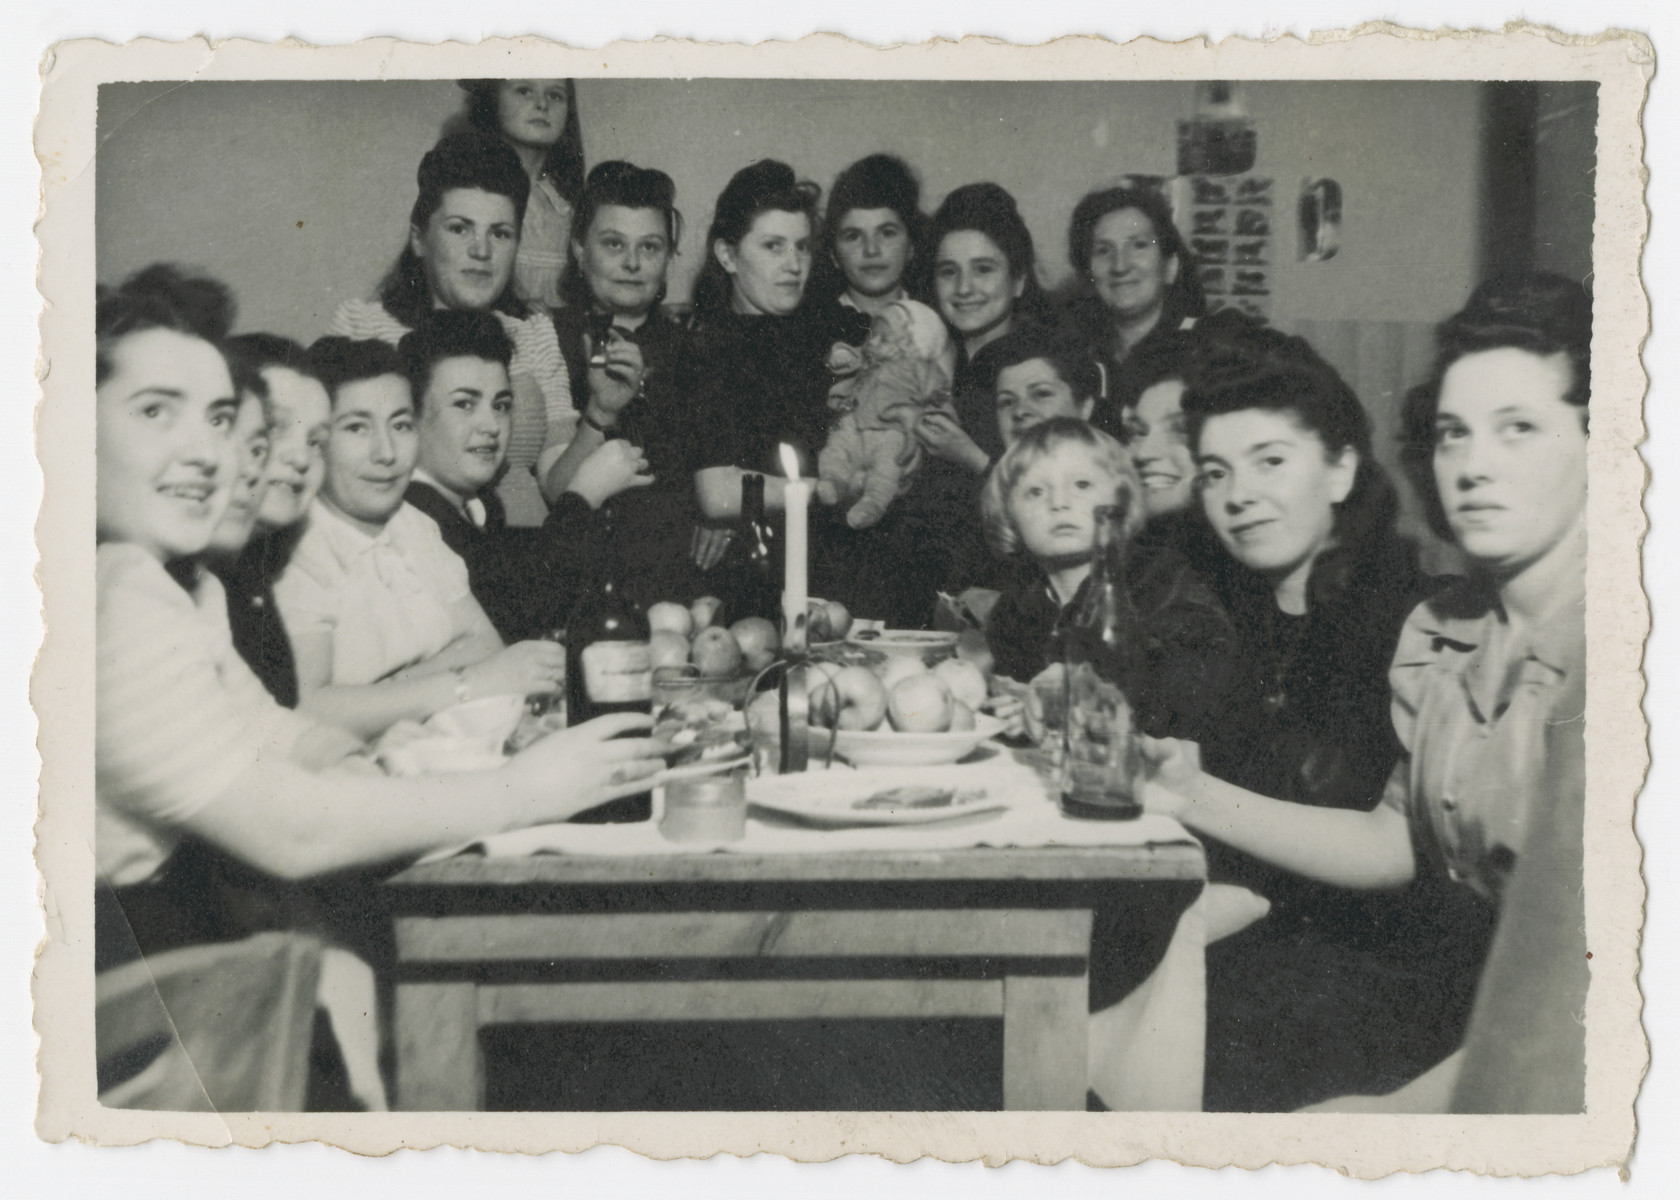 A group of women gather for a festive meal in the Bergen-Belsen displaced persons camp.  Anna Rosenzweig is in the rear, and her sister-in-law Mary Sadie Rosenzweig is on the far right.